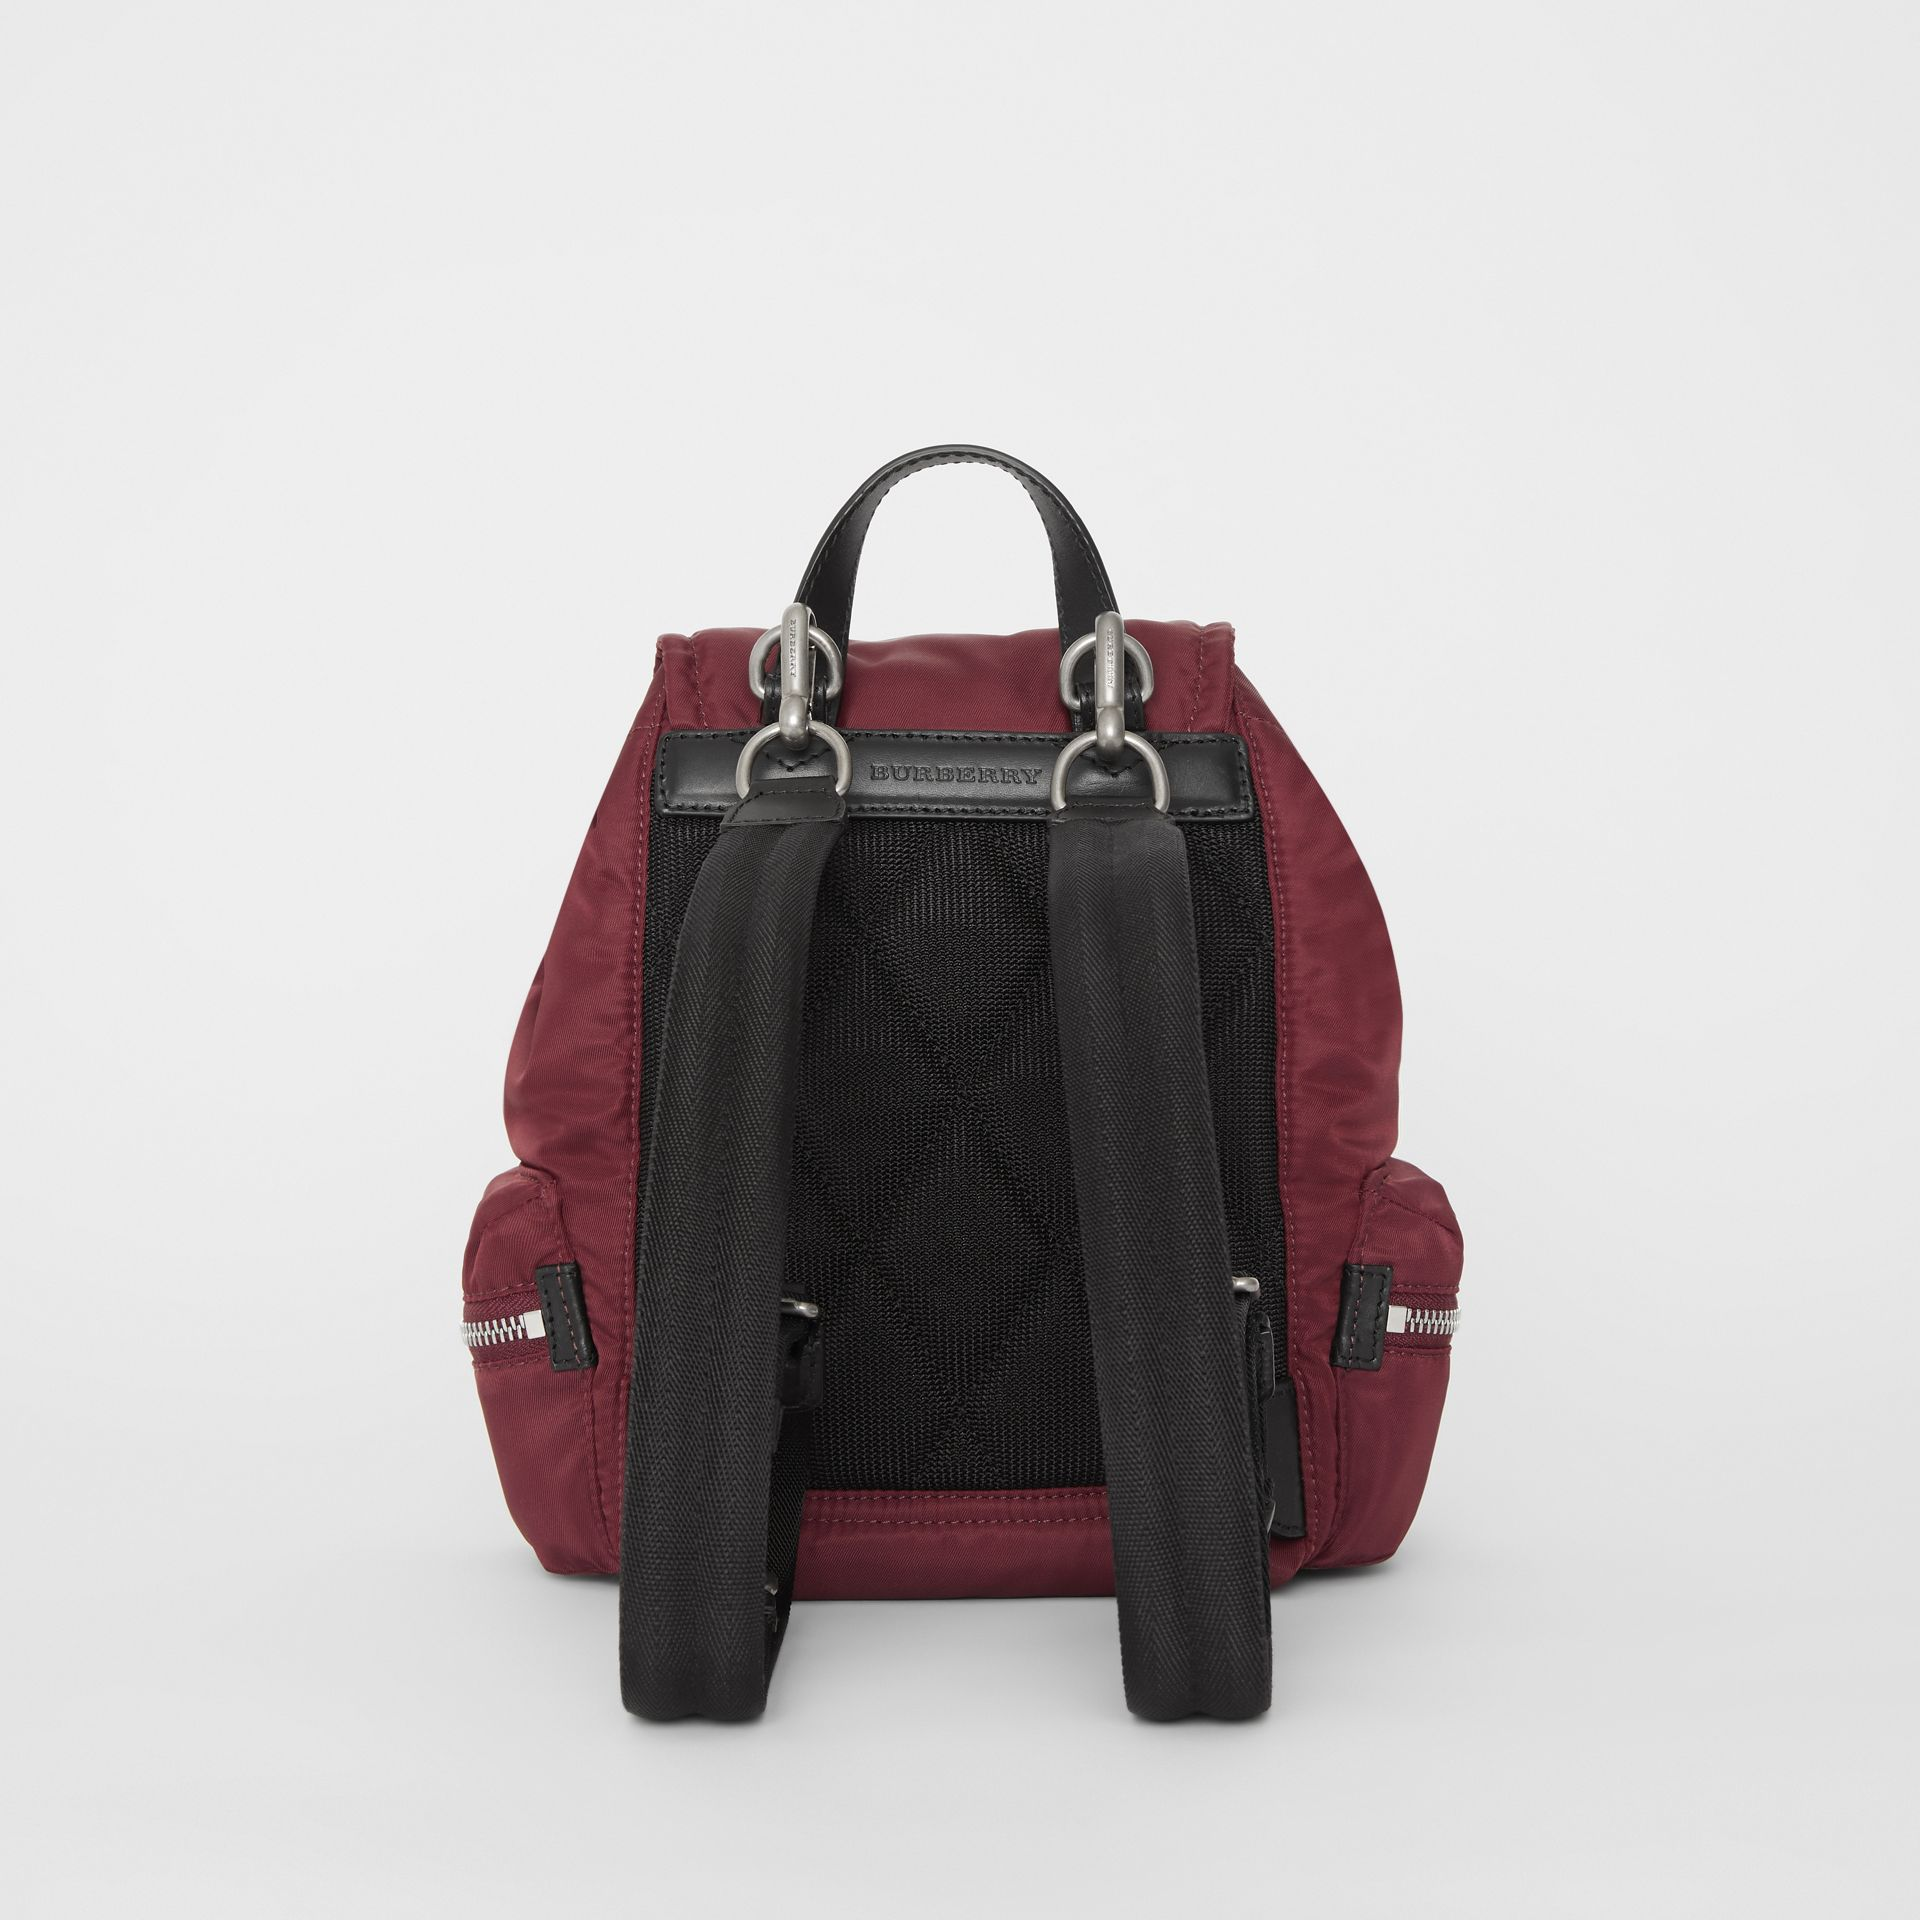 The Small Crossbody Rucksack in Puffer Nylon in Burgundy Red - Women | Burberry United Kingdom - gallery image 8